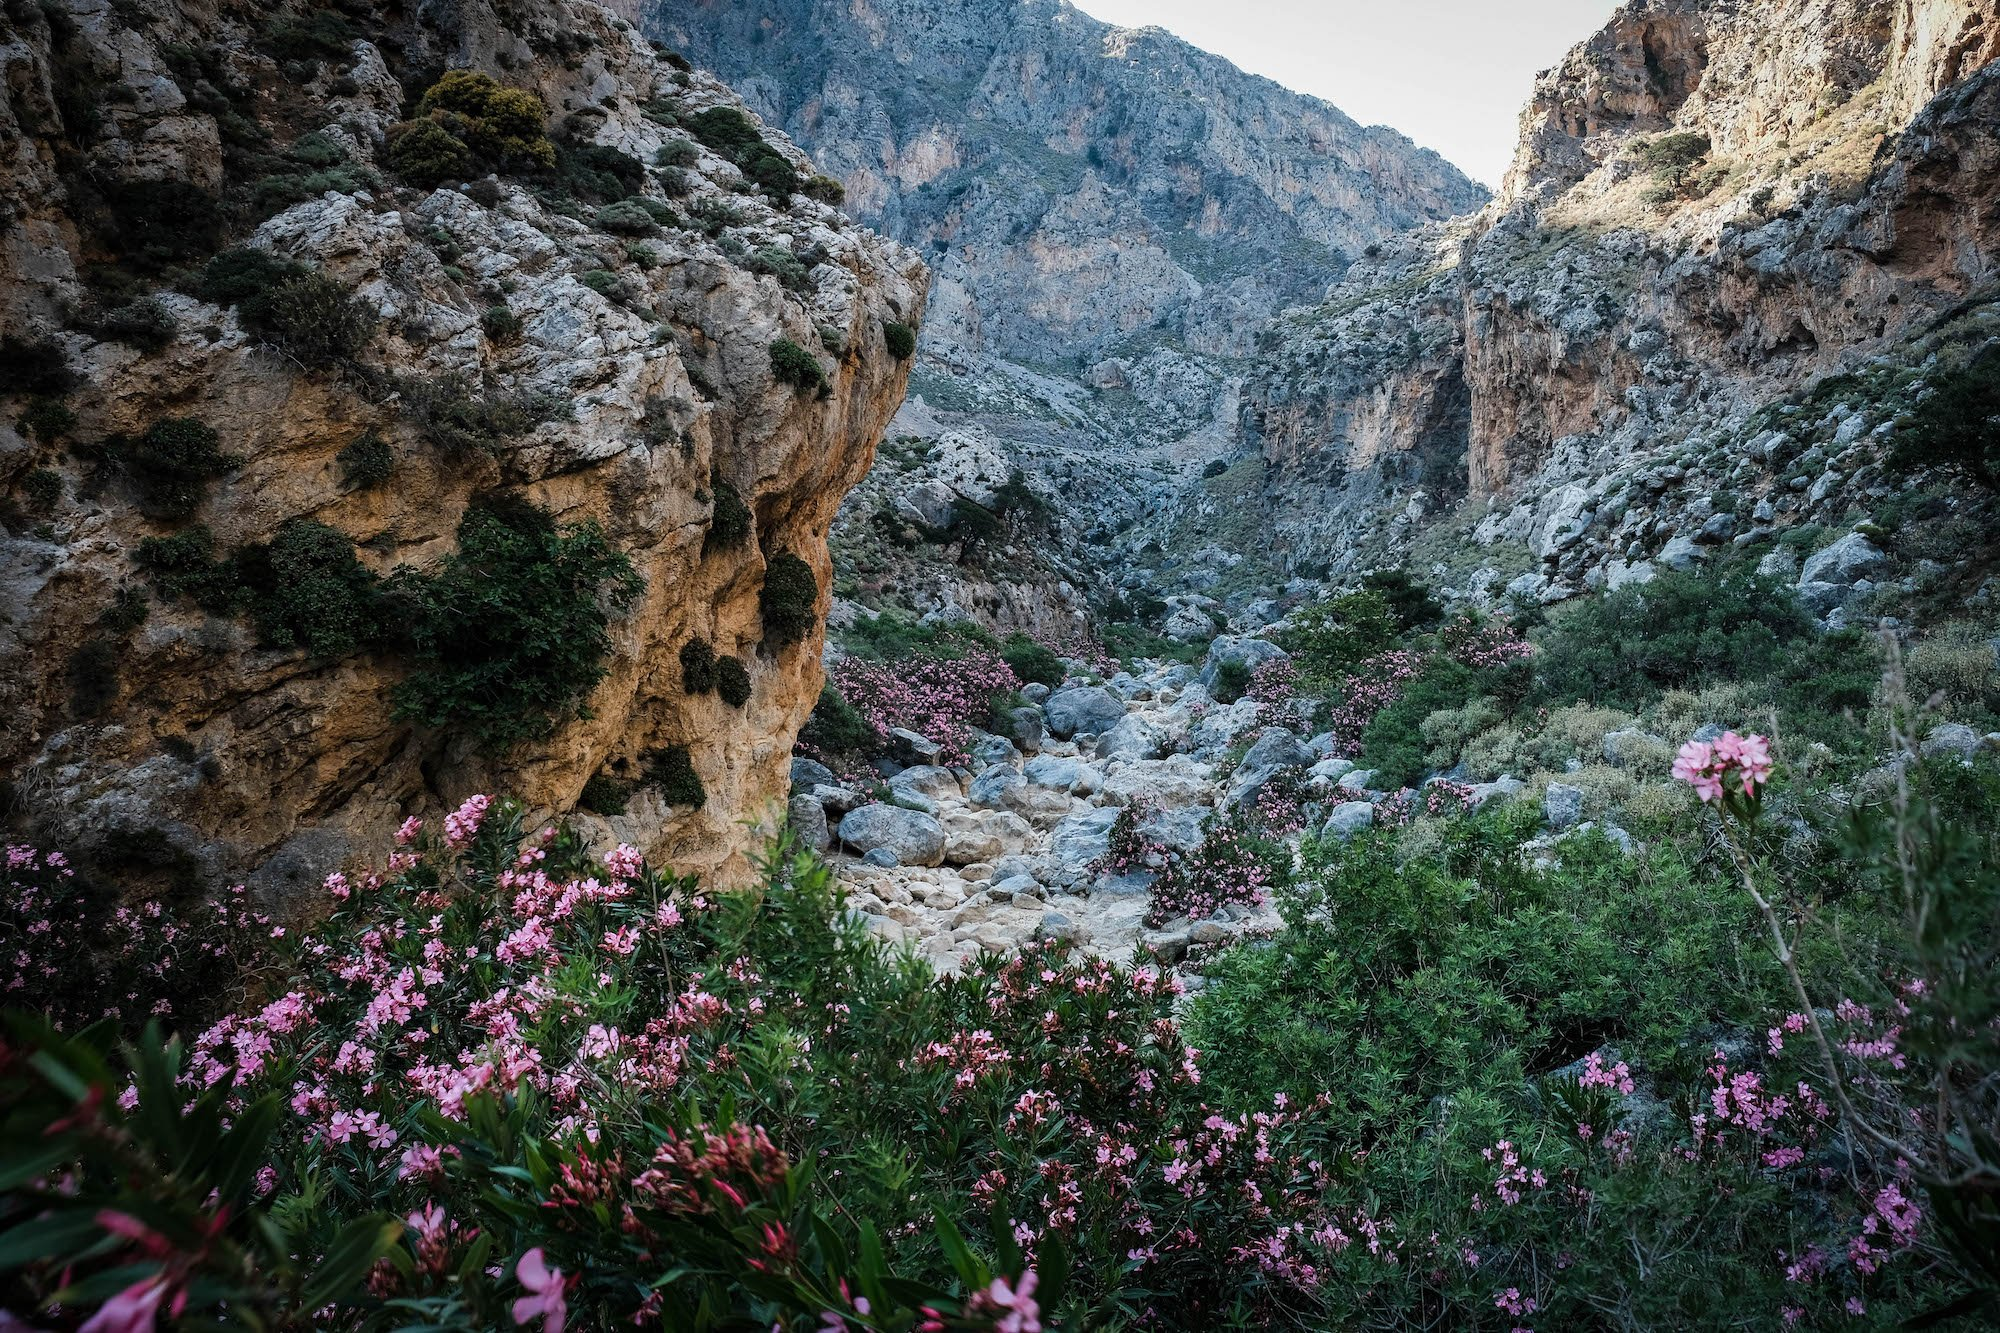 crete-greece-gorge-Kourtaliotiko-beautiful